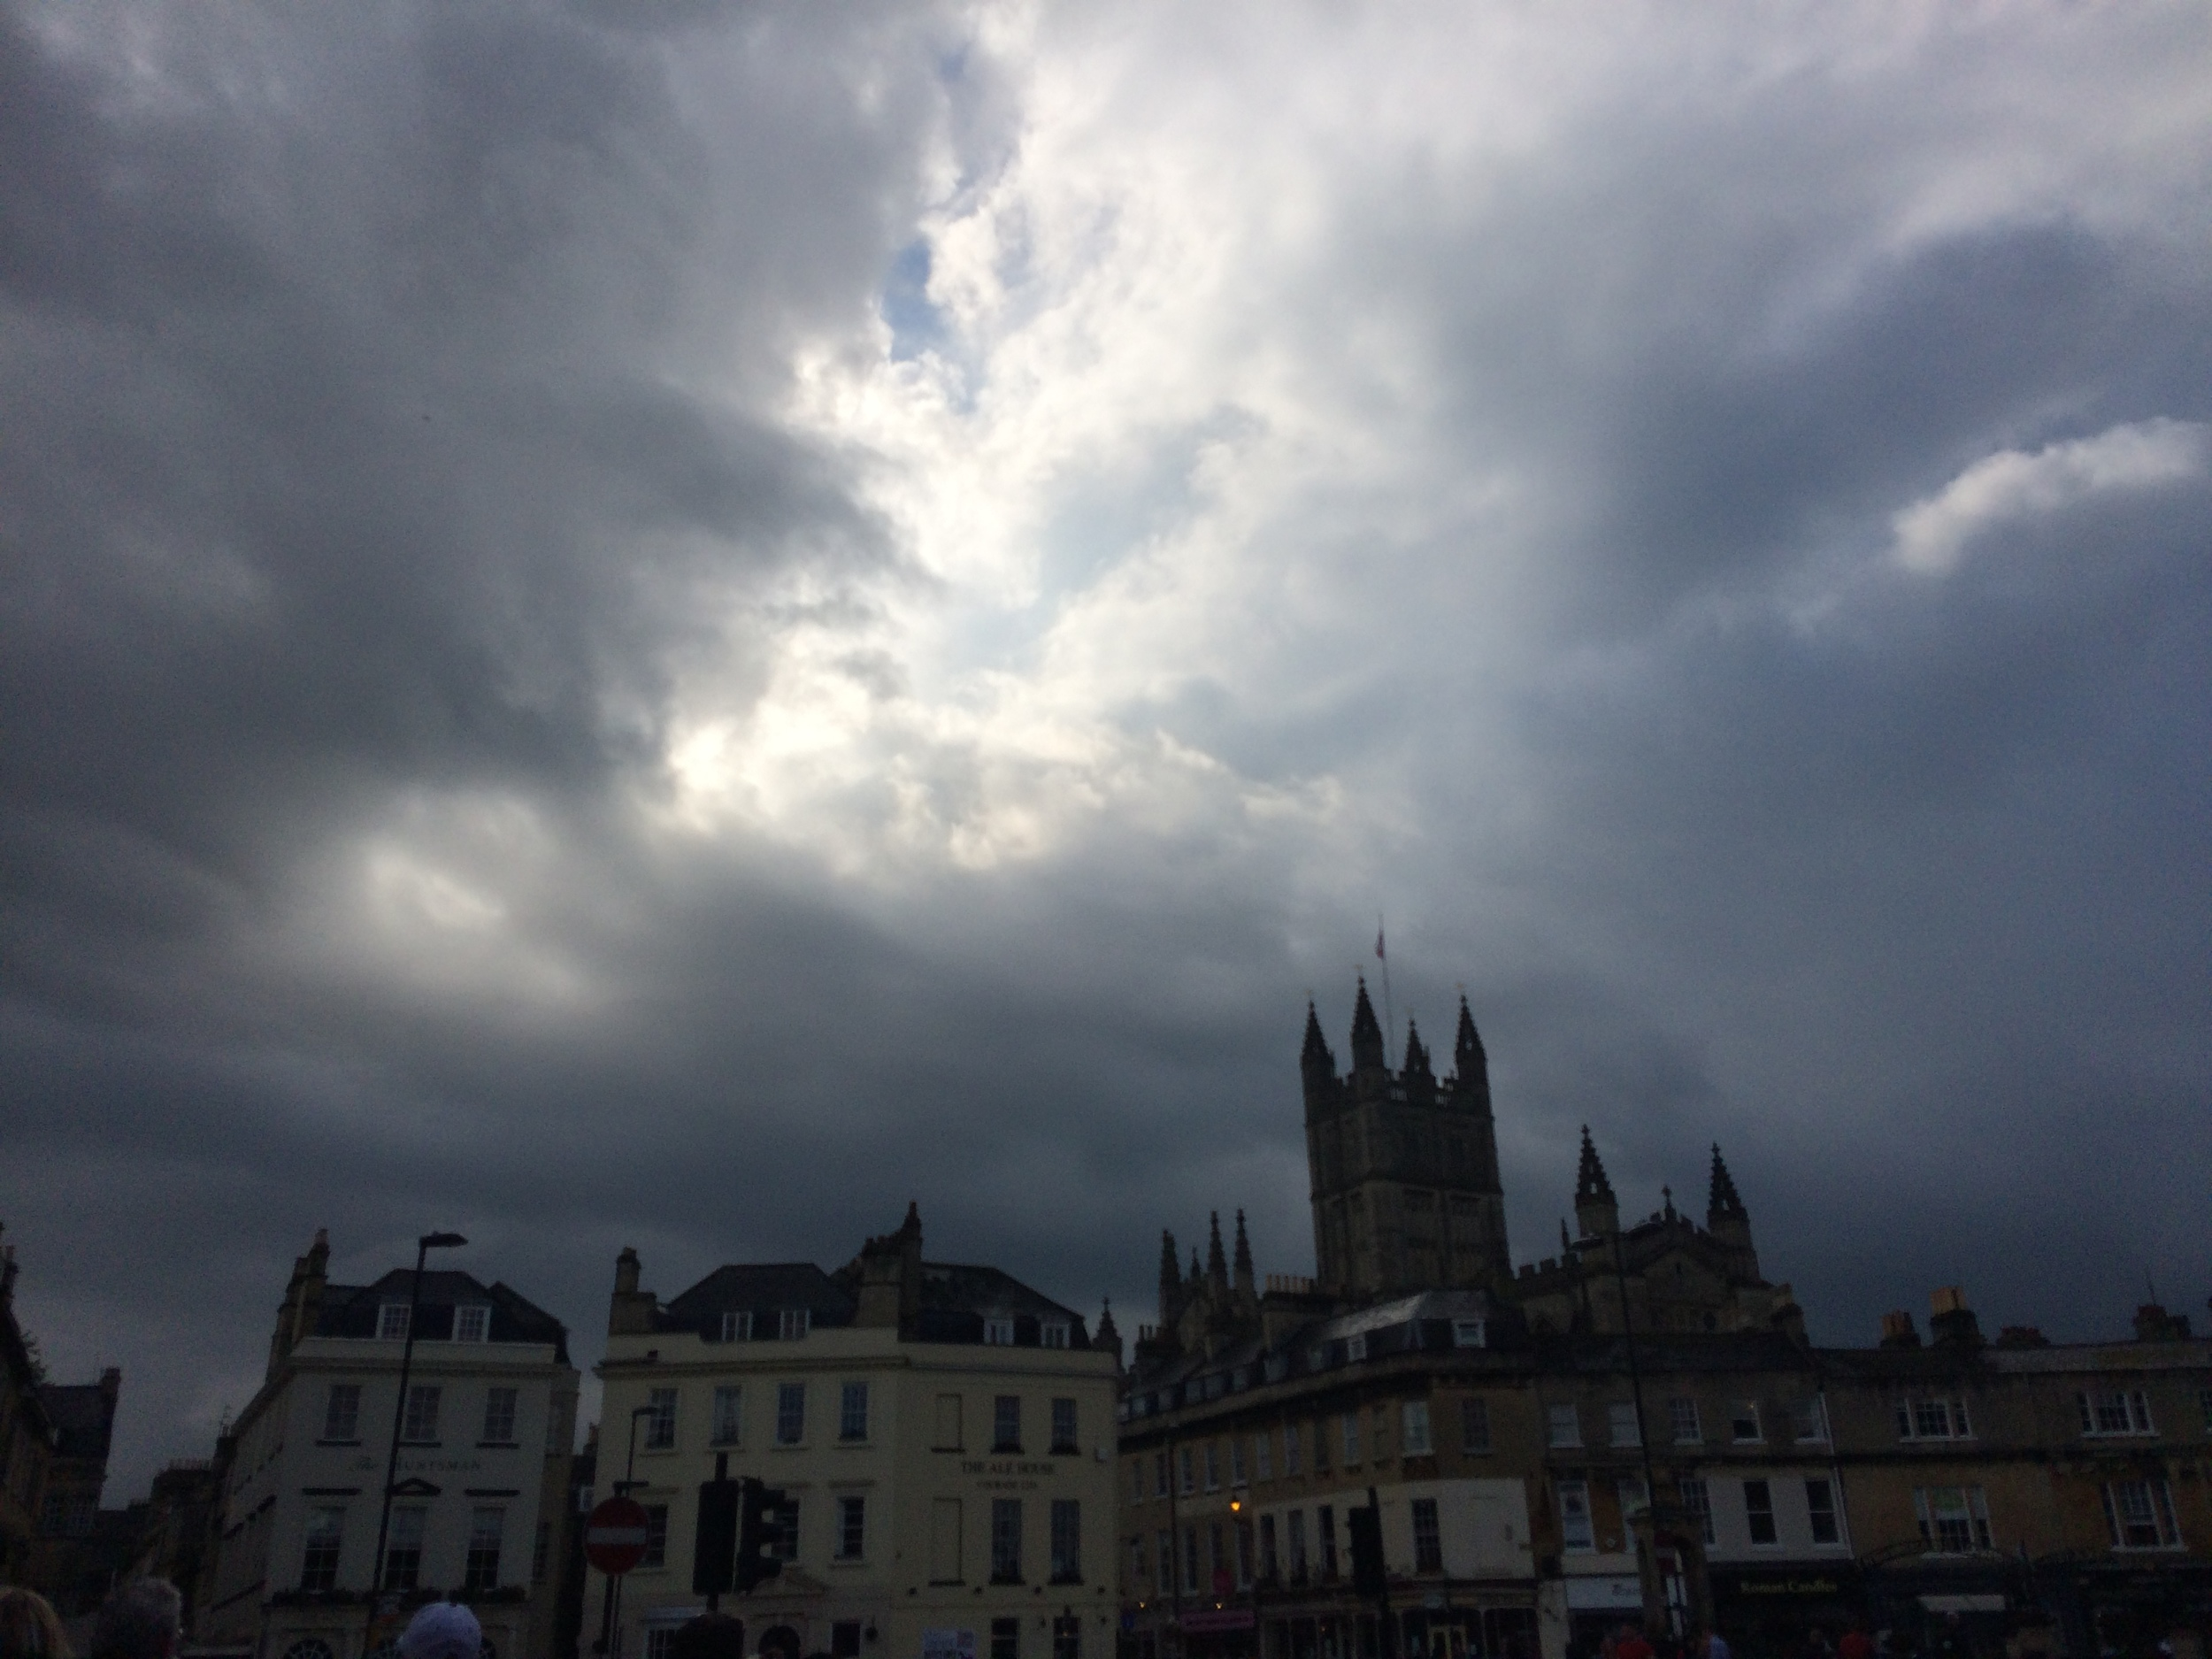 First view of Bath after a rainstorm!